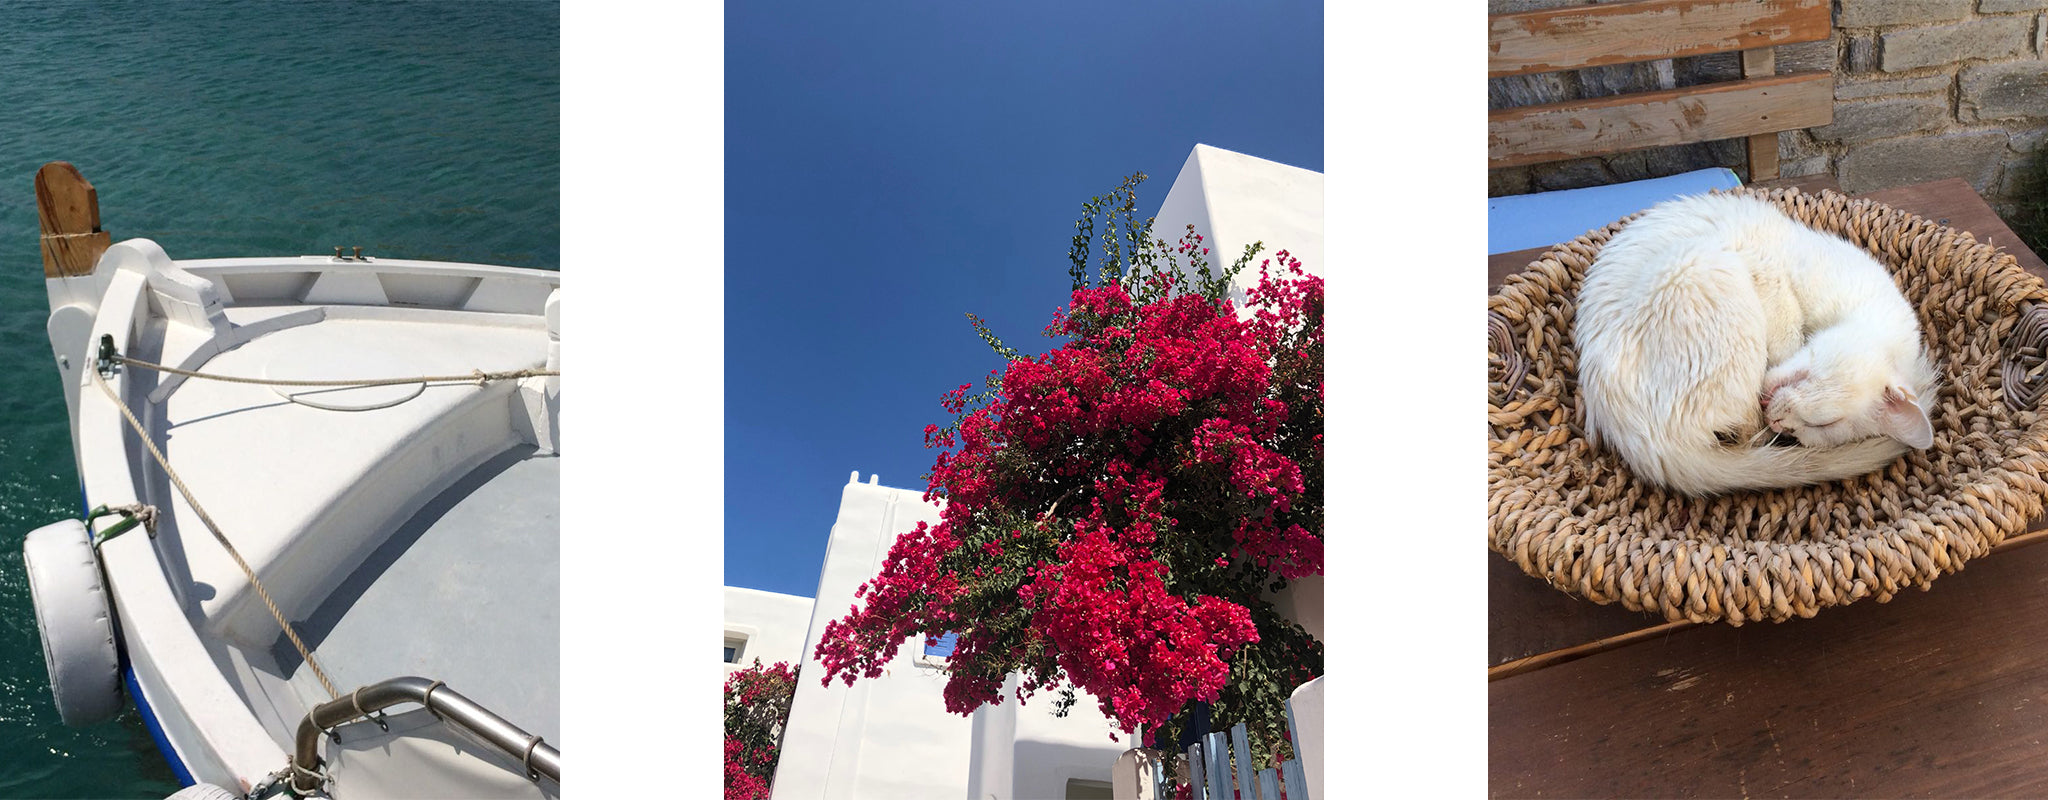 Greece boat flowers kitten